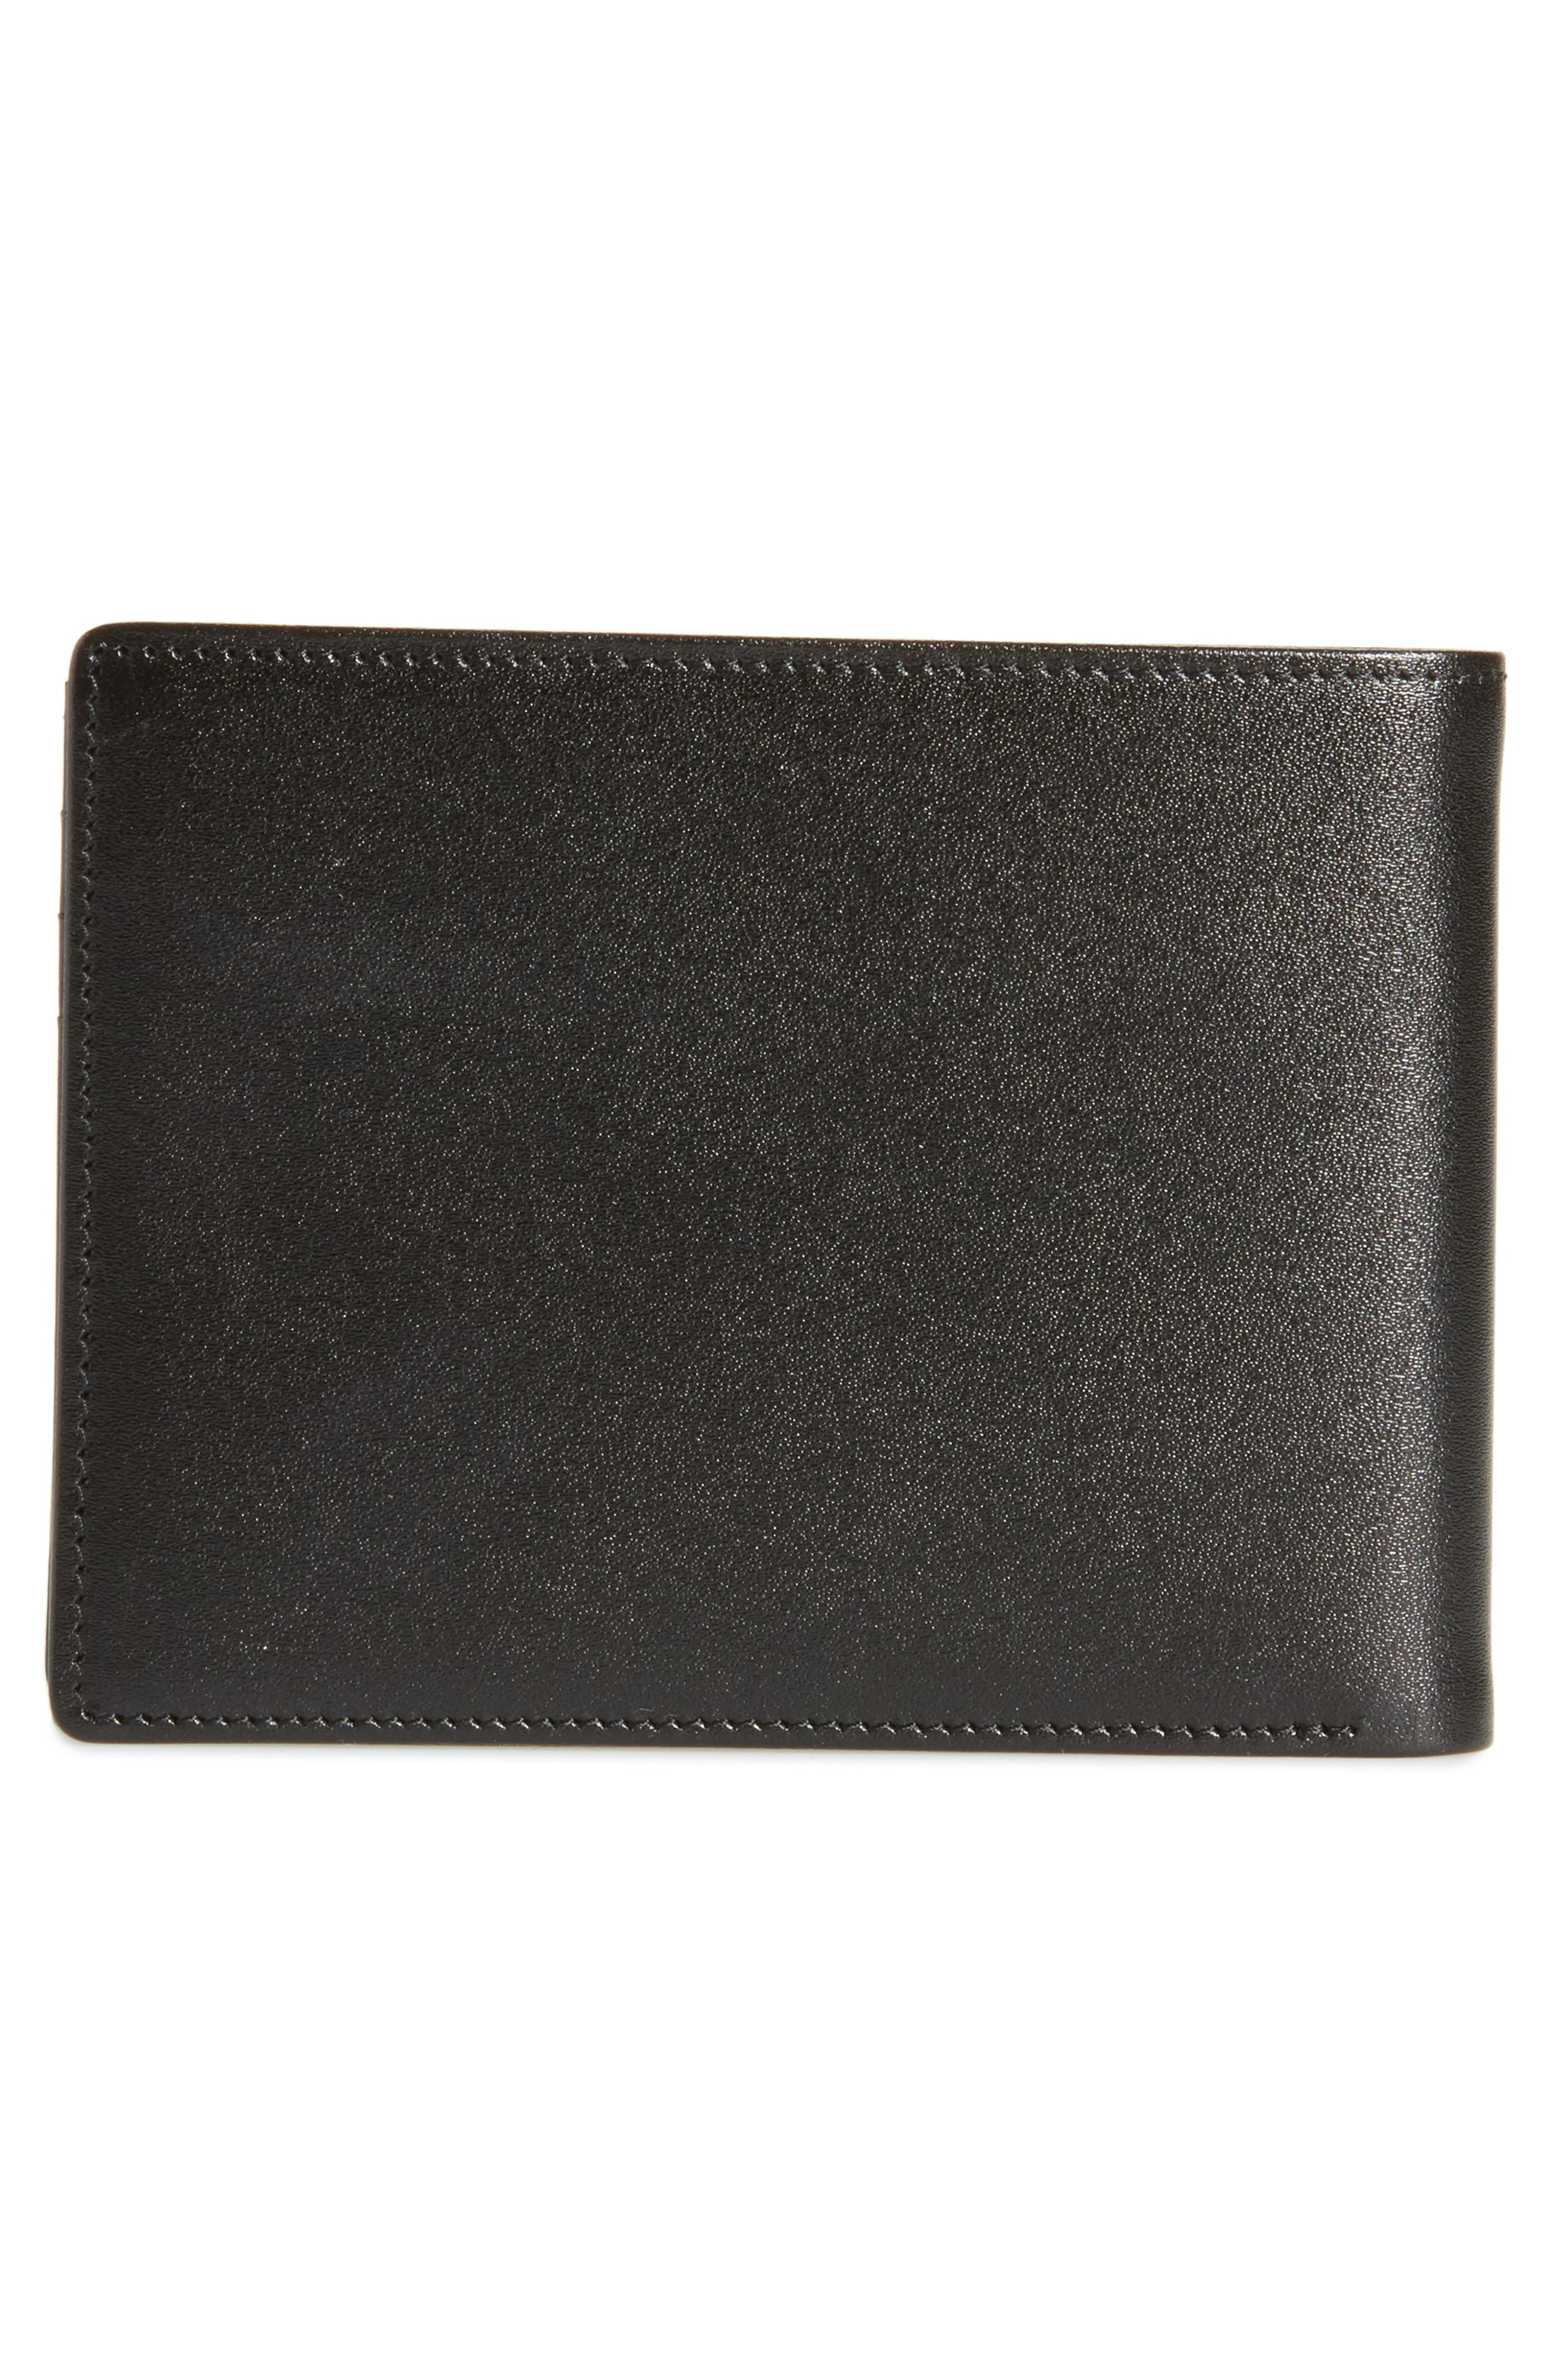 Bifold Leather Wallet,                             Alternate thumbnail 3, color,                             No Color